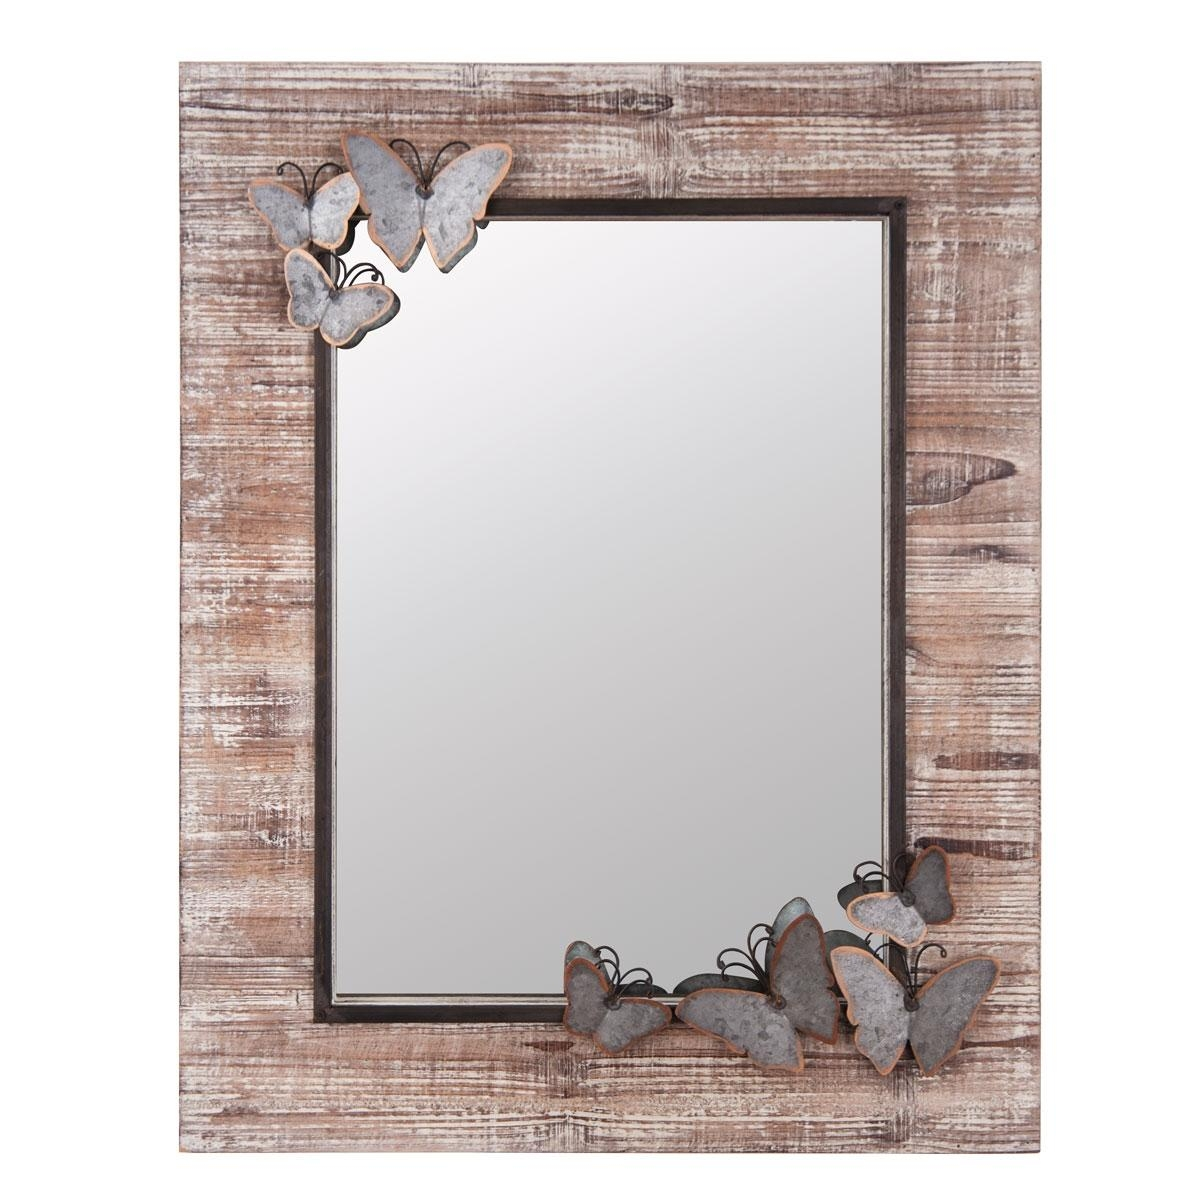 Butterfly Wood Frame Wall Mirror | Plum & Post With Regard To Butterfly Wall Mirrors (Image 3 of 20)